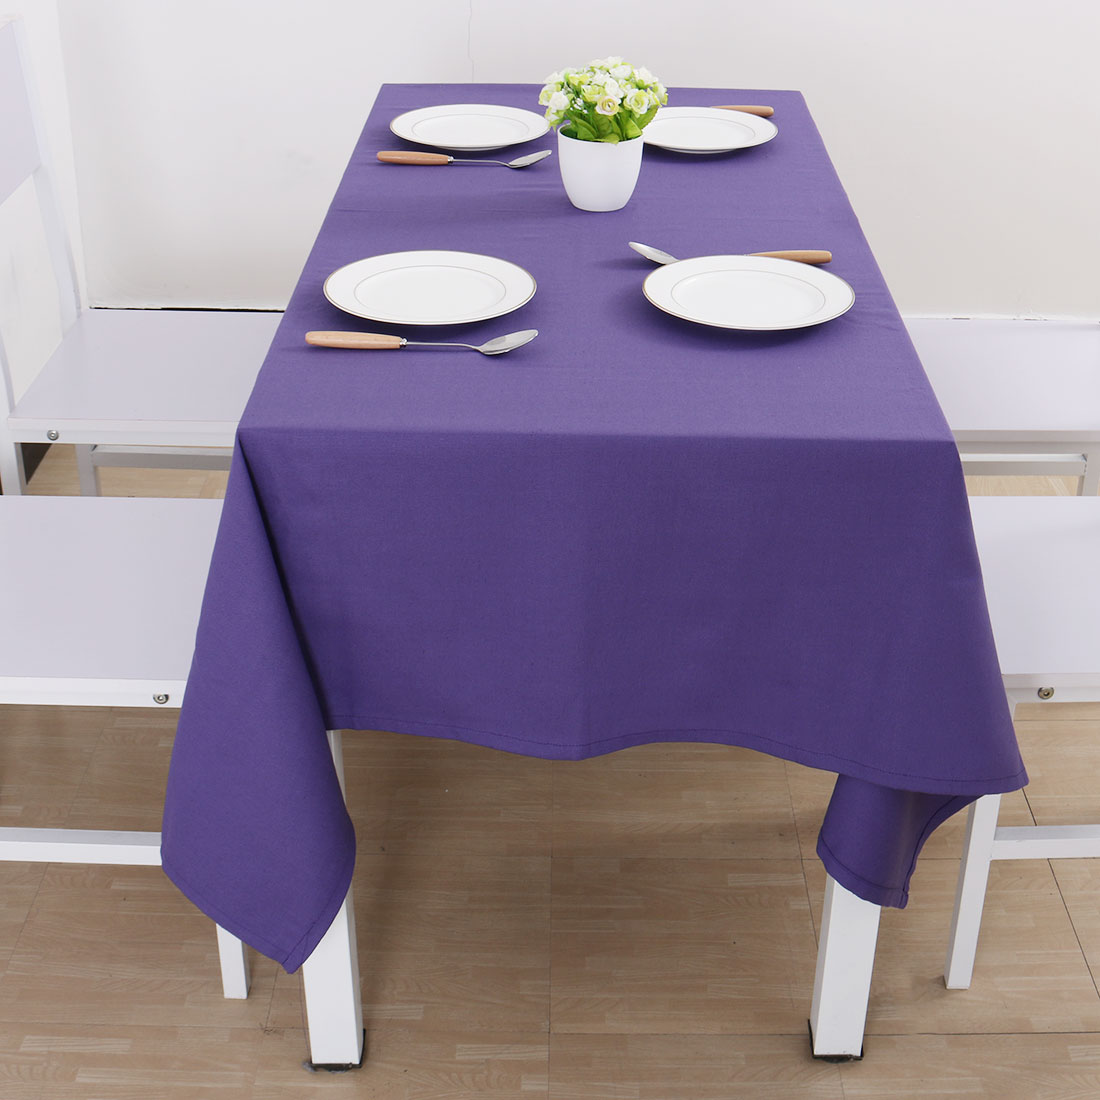 """Vintage Rectangle Cotton Linen Tablecloth Purple 55""""x71"""" Water Stain Resistant - image 6 of 7"""